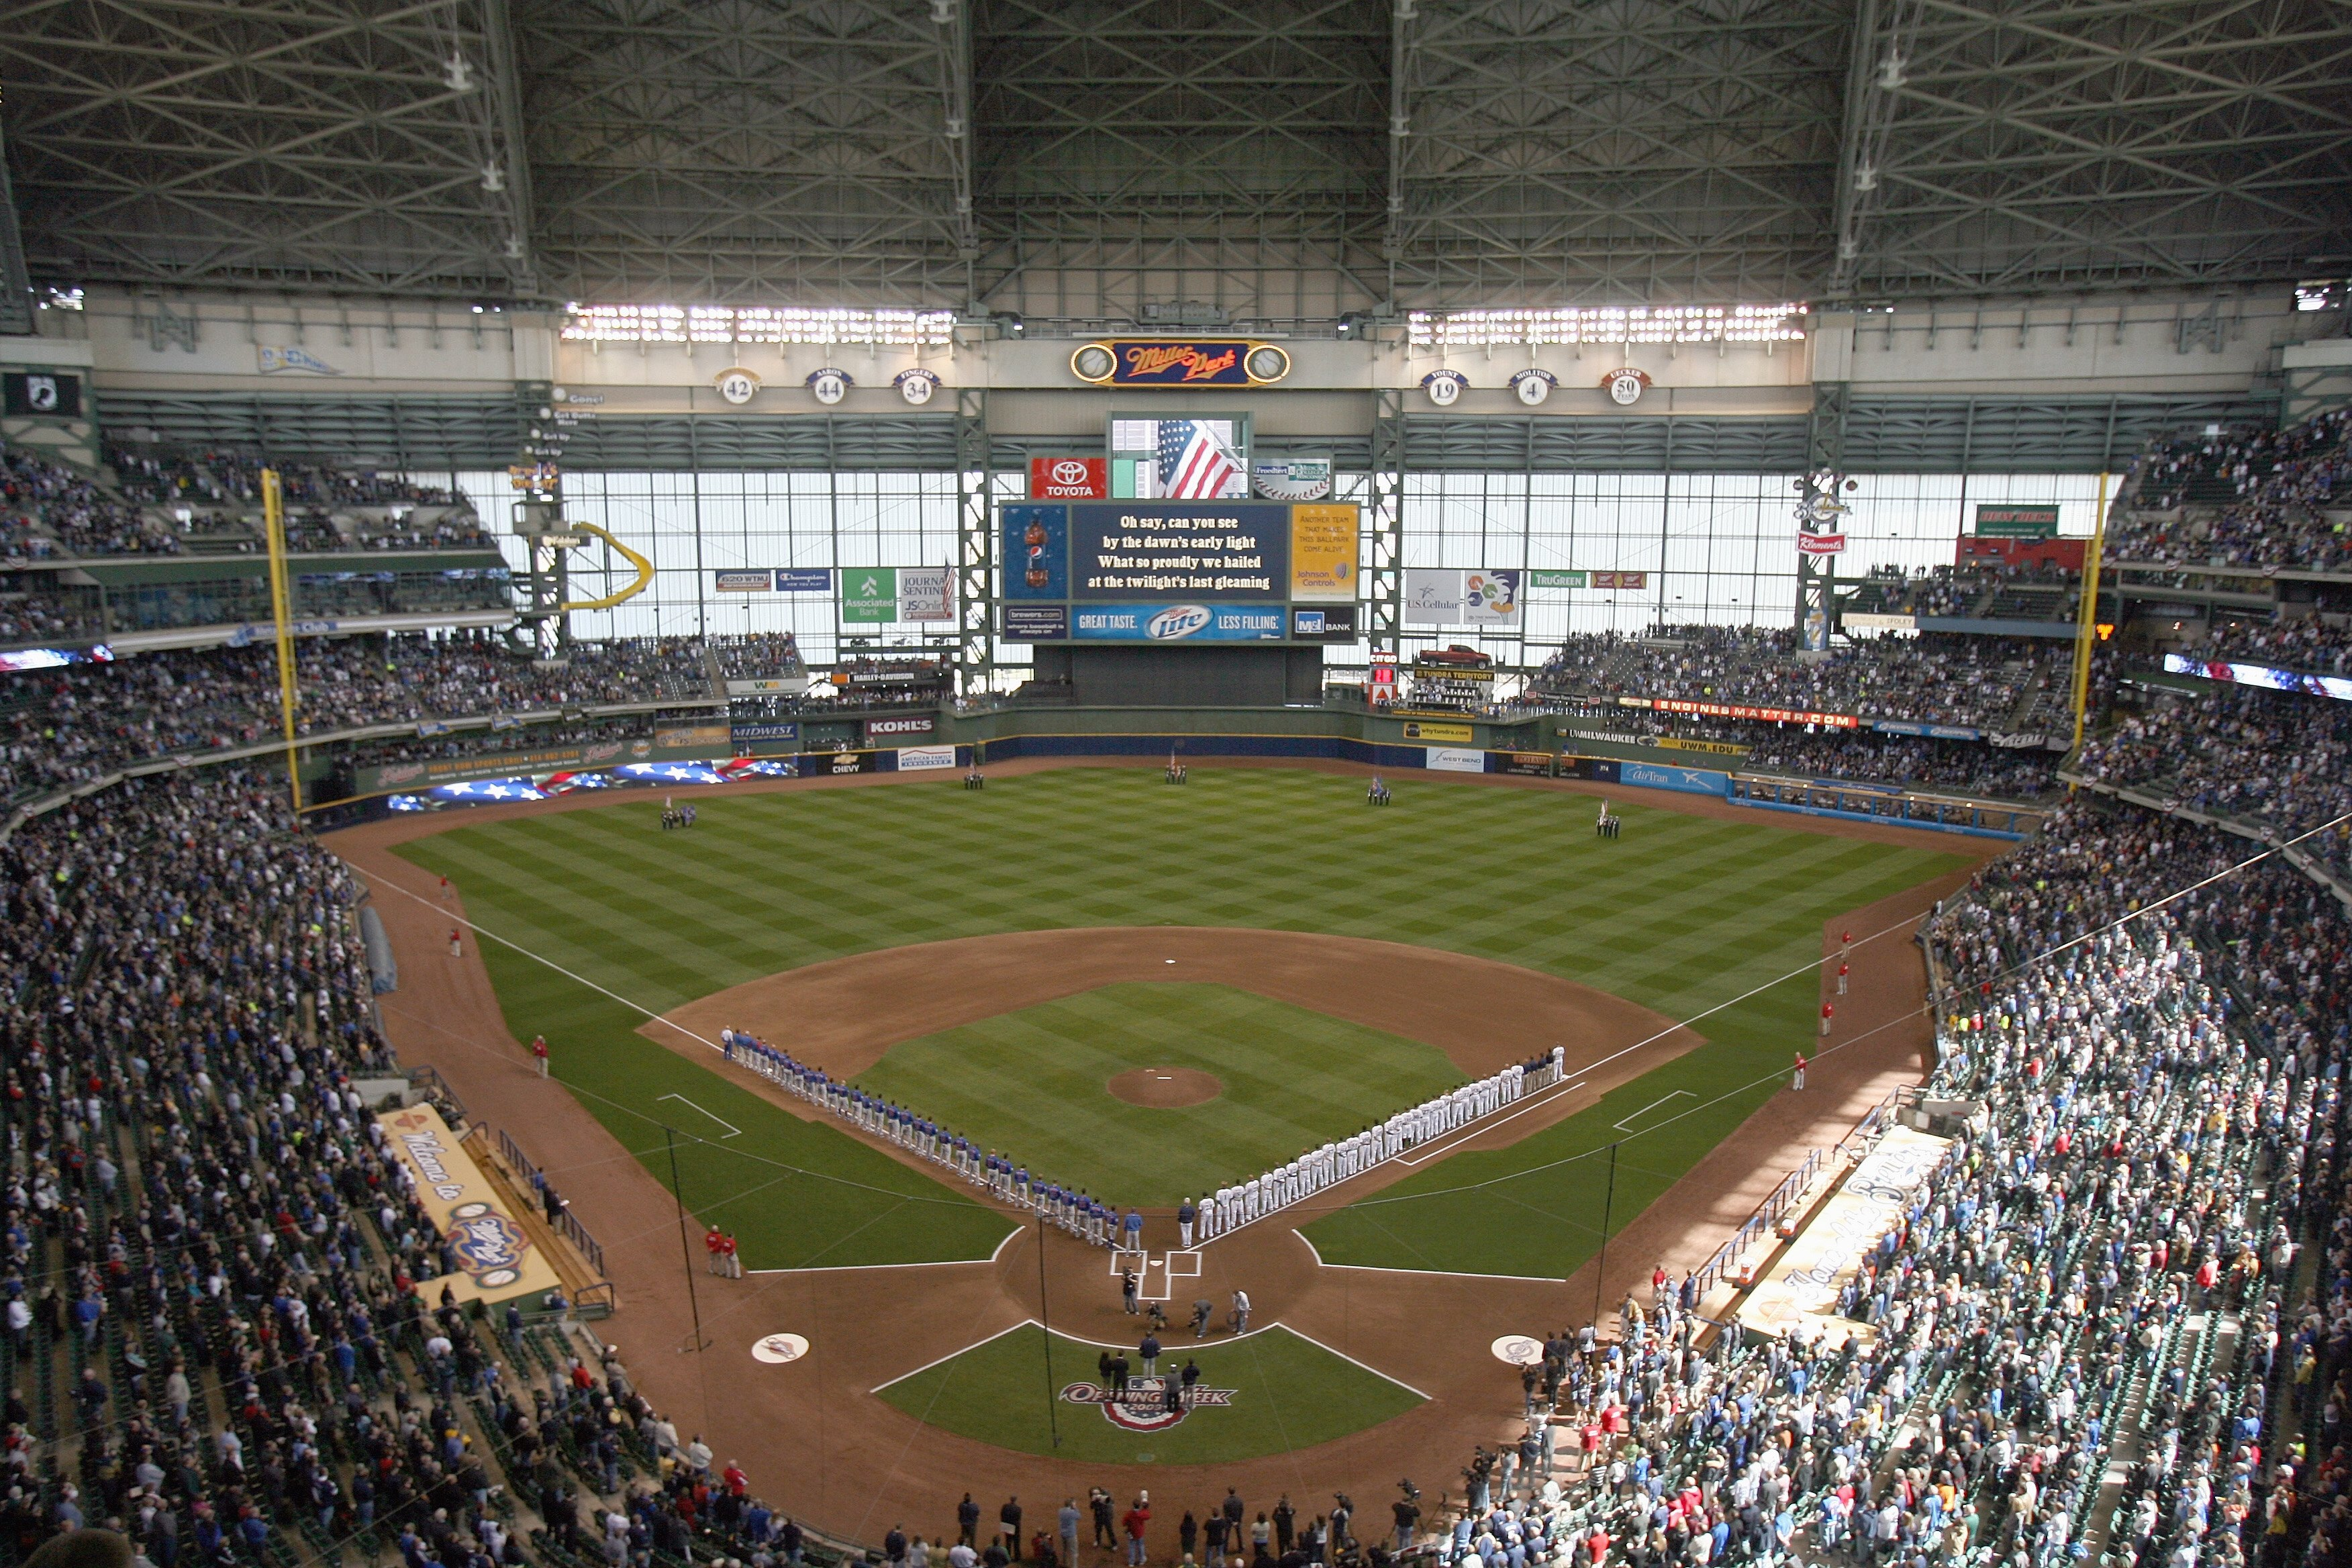 MILWAUKEE - APRIL 10: A general view of Miller Park taken during Opening Day ceremonies before a game between the Milwaukee Brewers and the Chicago Cubs on April 10, 2009 in Milwaukee, Wisconsin. (Photo by Jonathan Daniel/Getty Images)